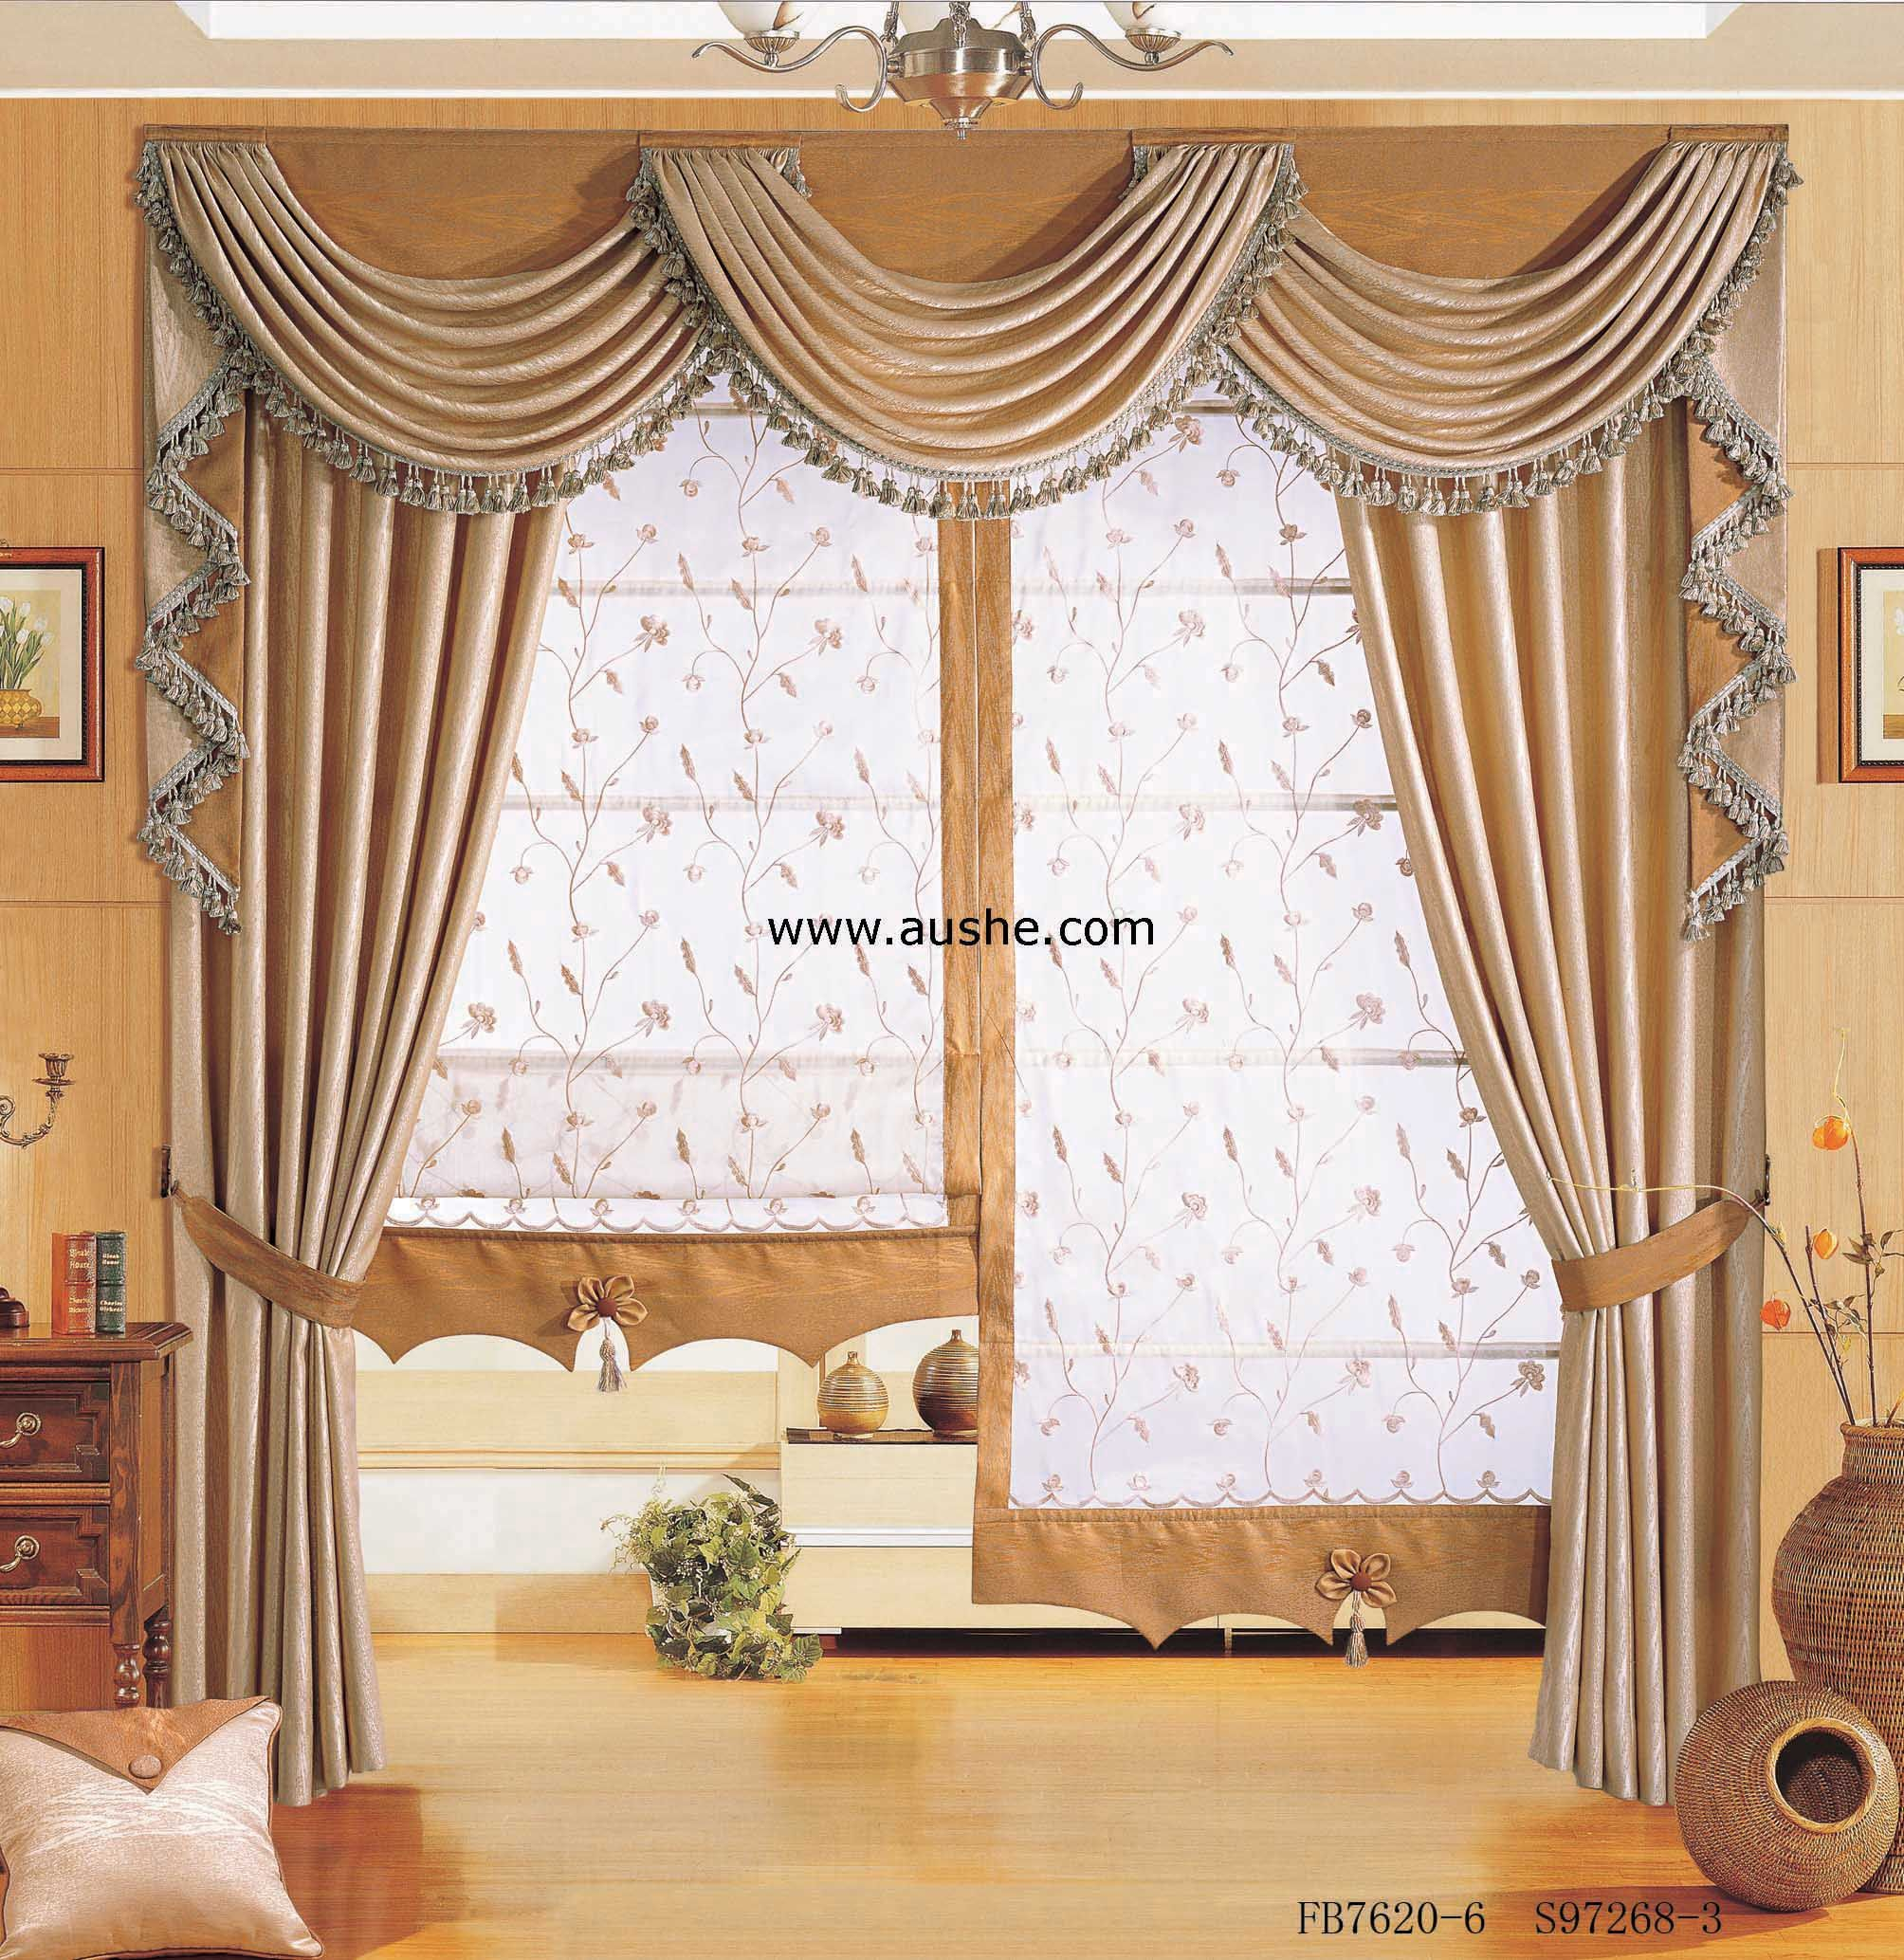 Curtain Valances Google Search Elegant Drapery Pinterest Curtain Valances Valance And